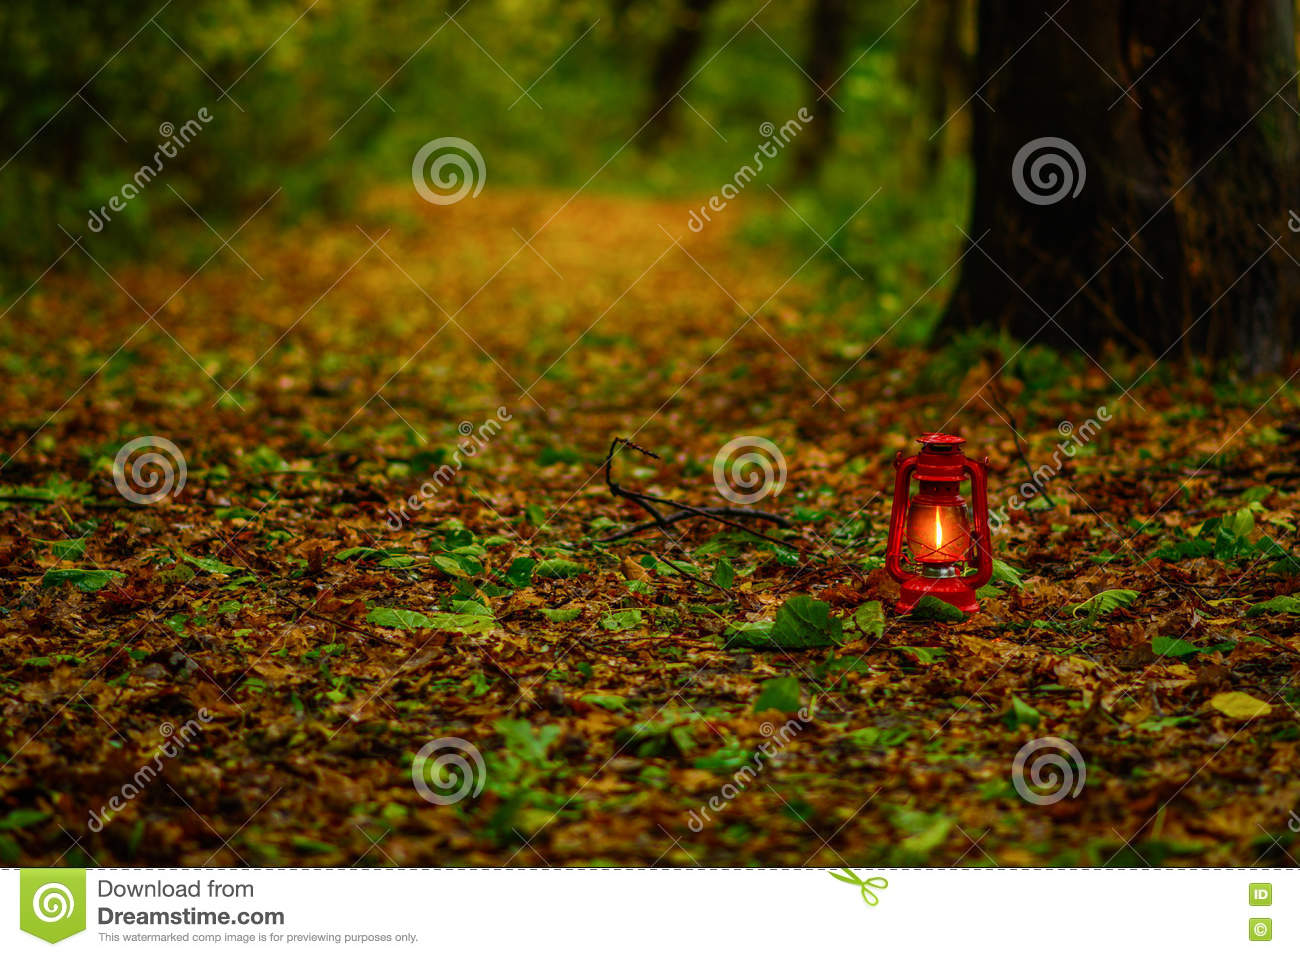 Lantern in the autumn leaves